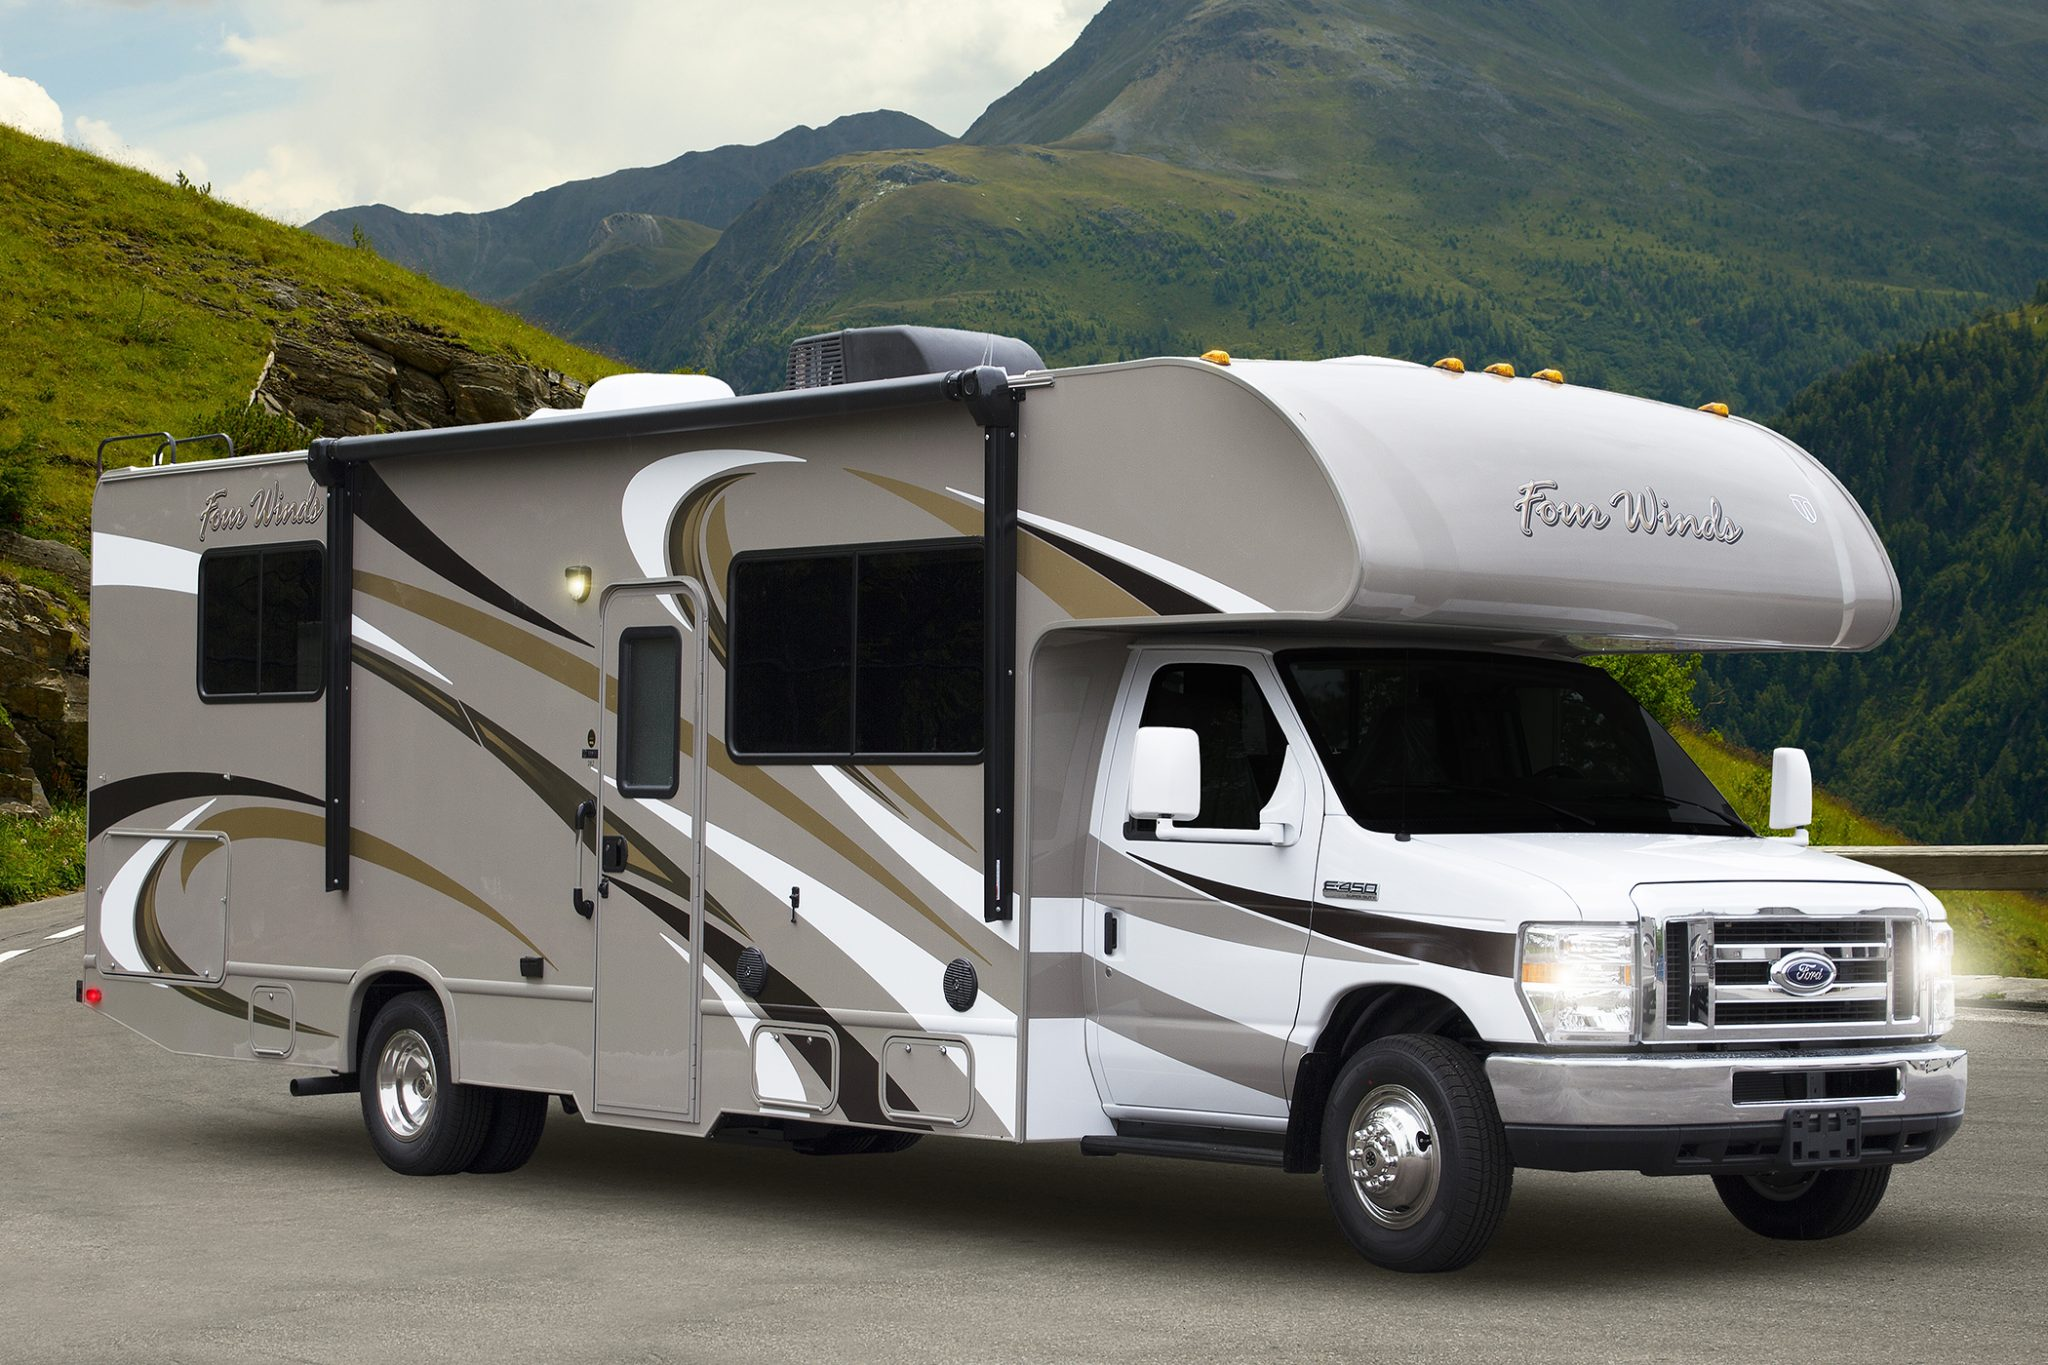 Auto Rv Buy And Sell Used Cars Trucks Rvs And More: Ford Motorhome Chassis Sales Growth Outpacing Industry